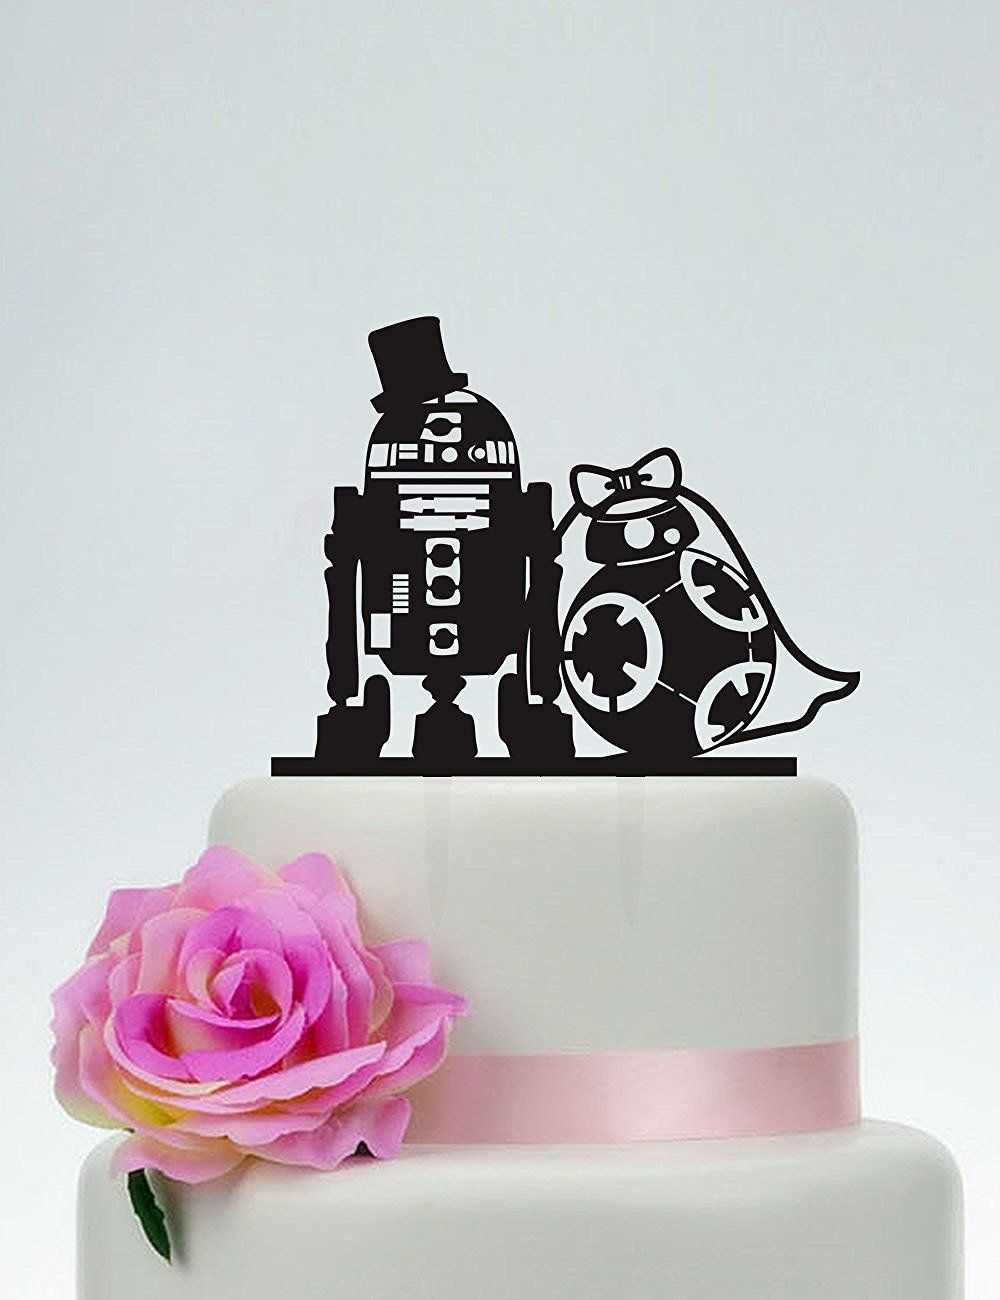 7 Star Wars Wedding Cake Toppers | wedding | Pinterest | Star wars ...